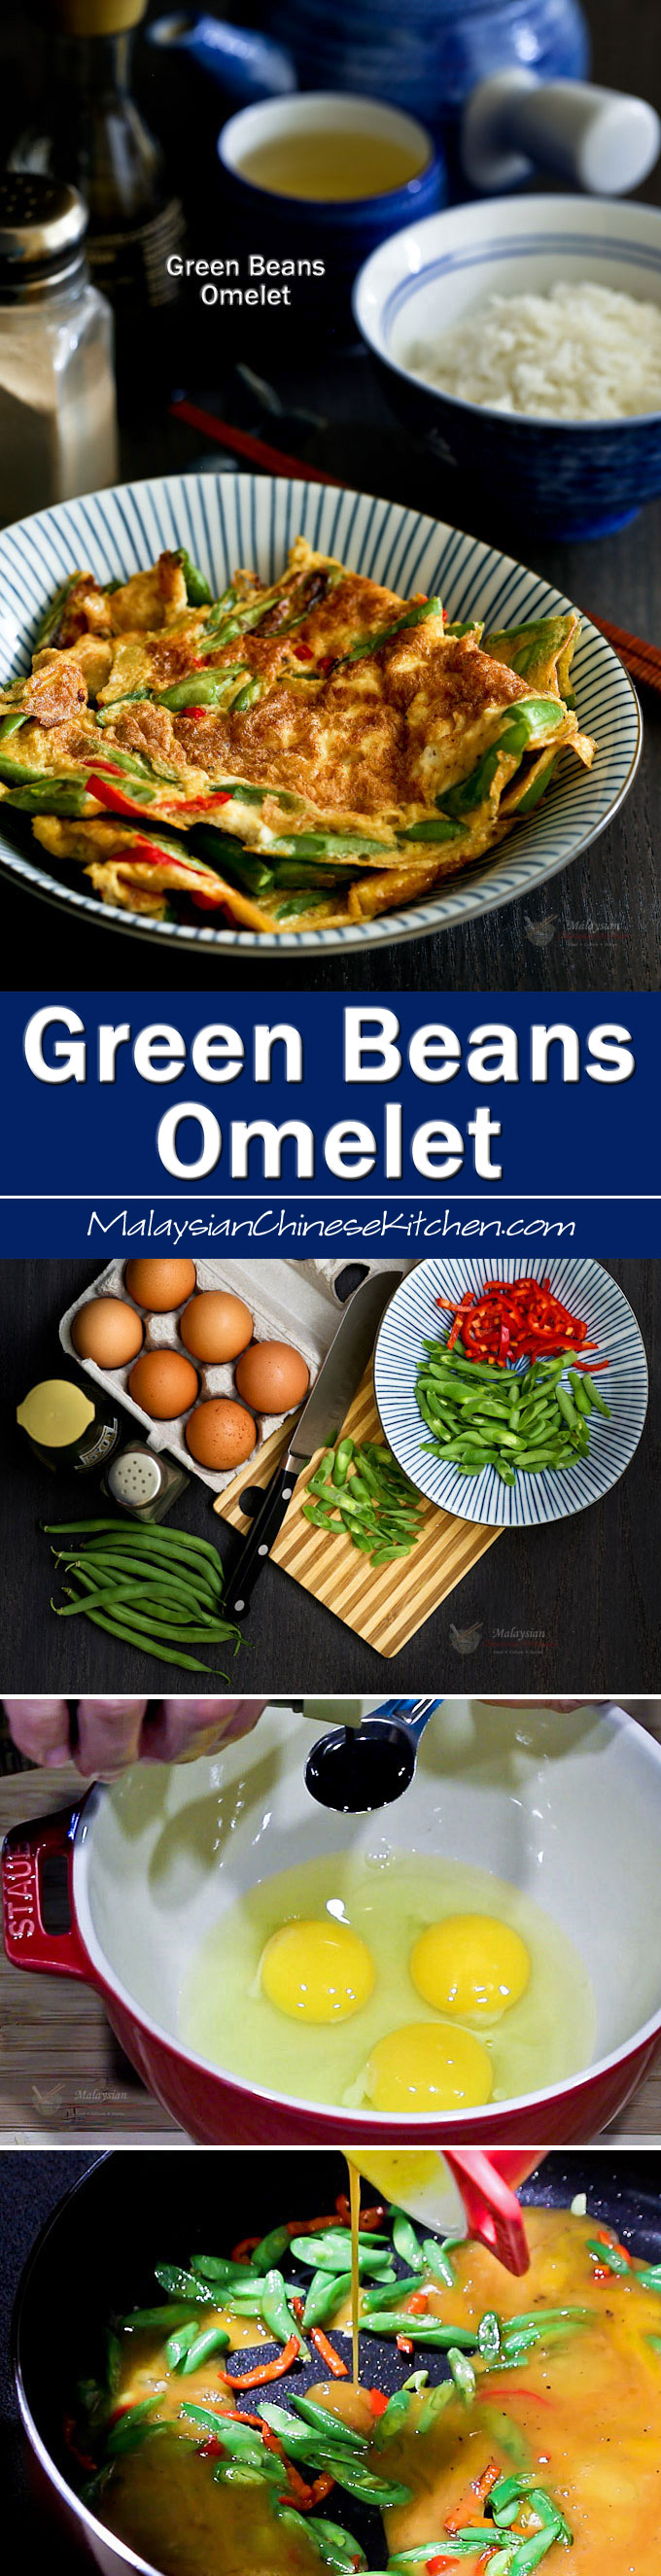 Green Beans Omelet, a quick and easy side dish usually eaten with rice. A cut red chili is added to provide a little heat. | RotiNRice.com